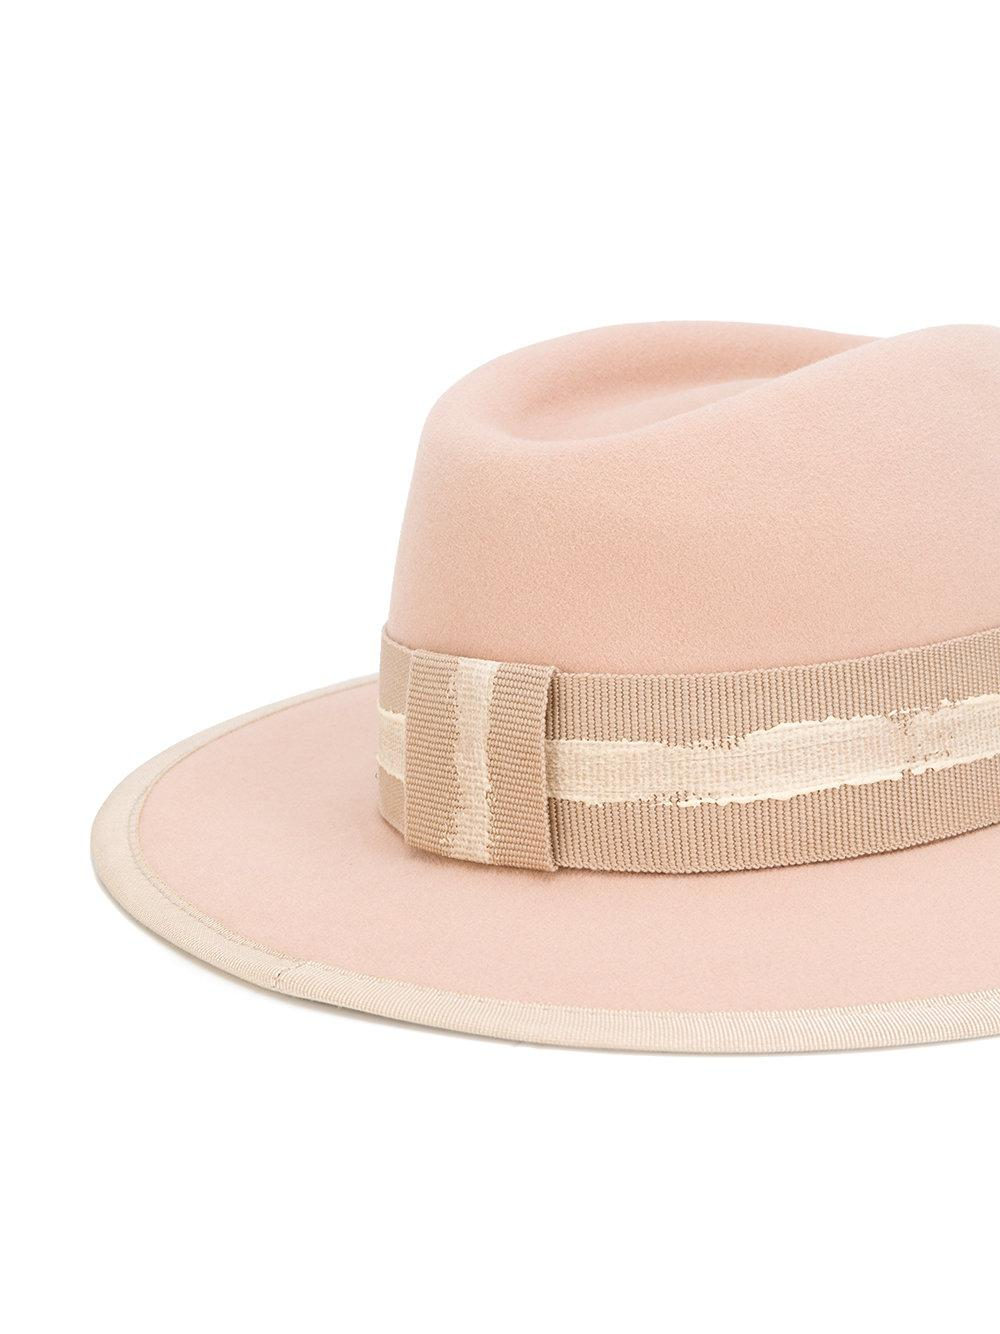 Lyst maison michel thadee hat in pink for Maison michel